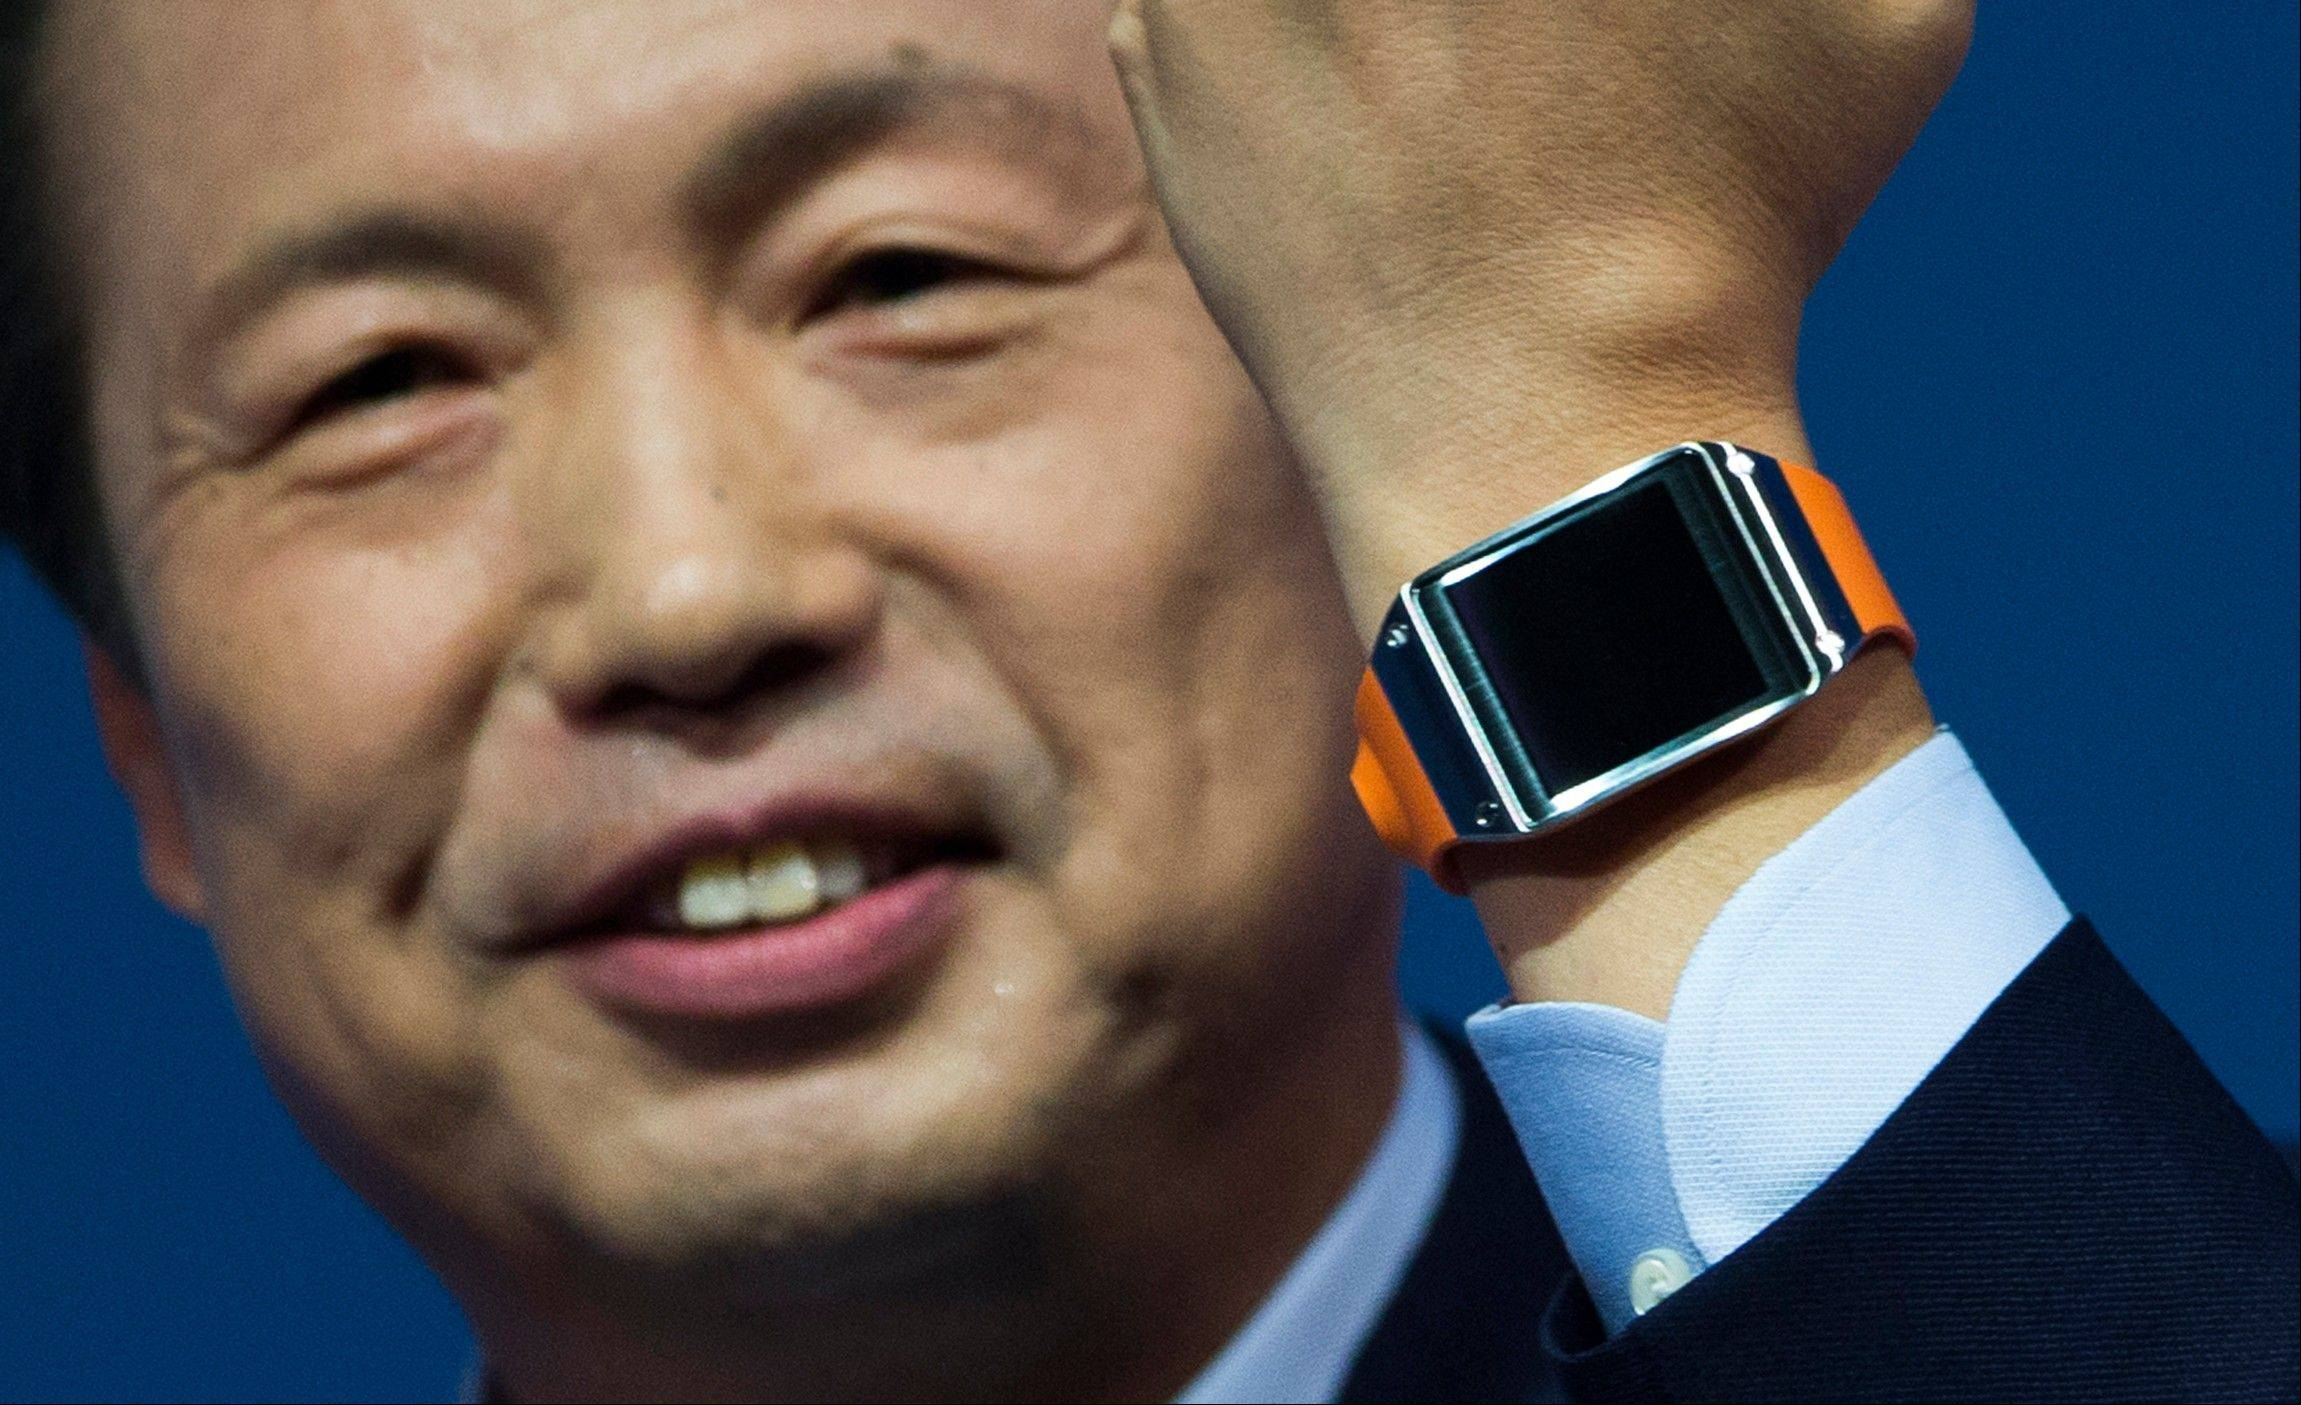 JK Shin, head of Samsung Mobile Communications, presents the Samsung Galaxy Gear in Berlin, Germany, Wednesday. Samsung has unveiled a highly anticipated digital wristwatch well ahead of a similar product expected from rival Apple.